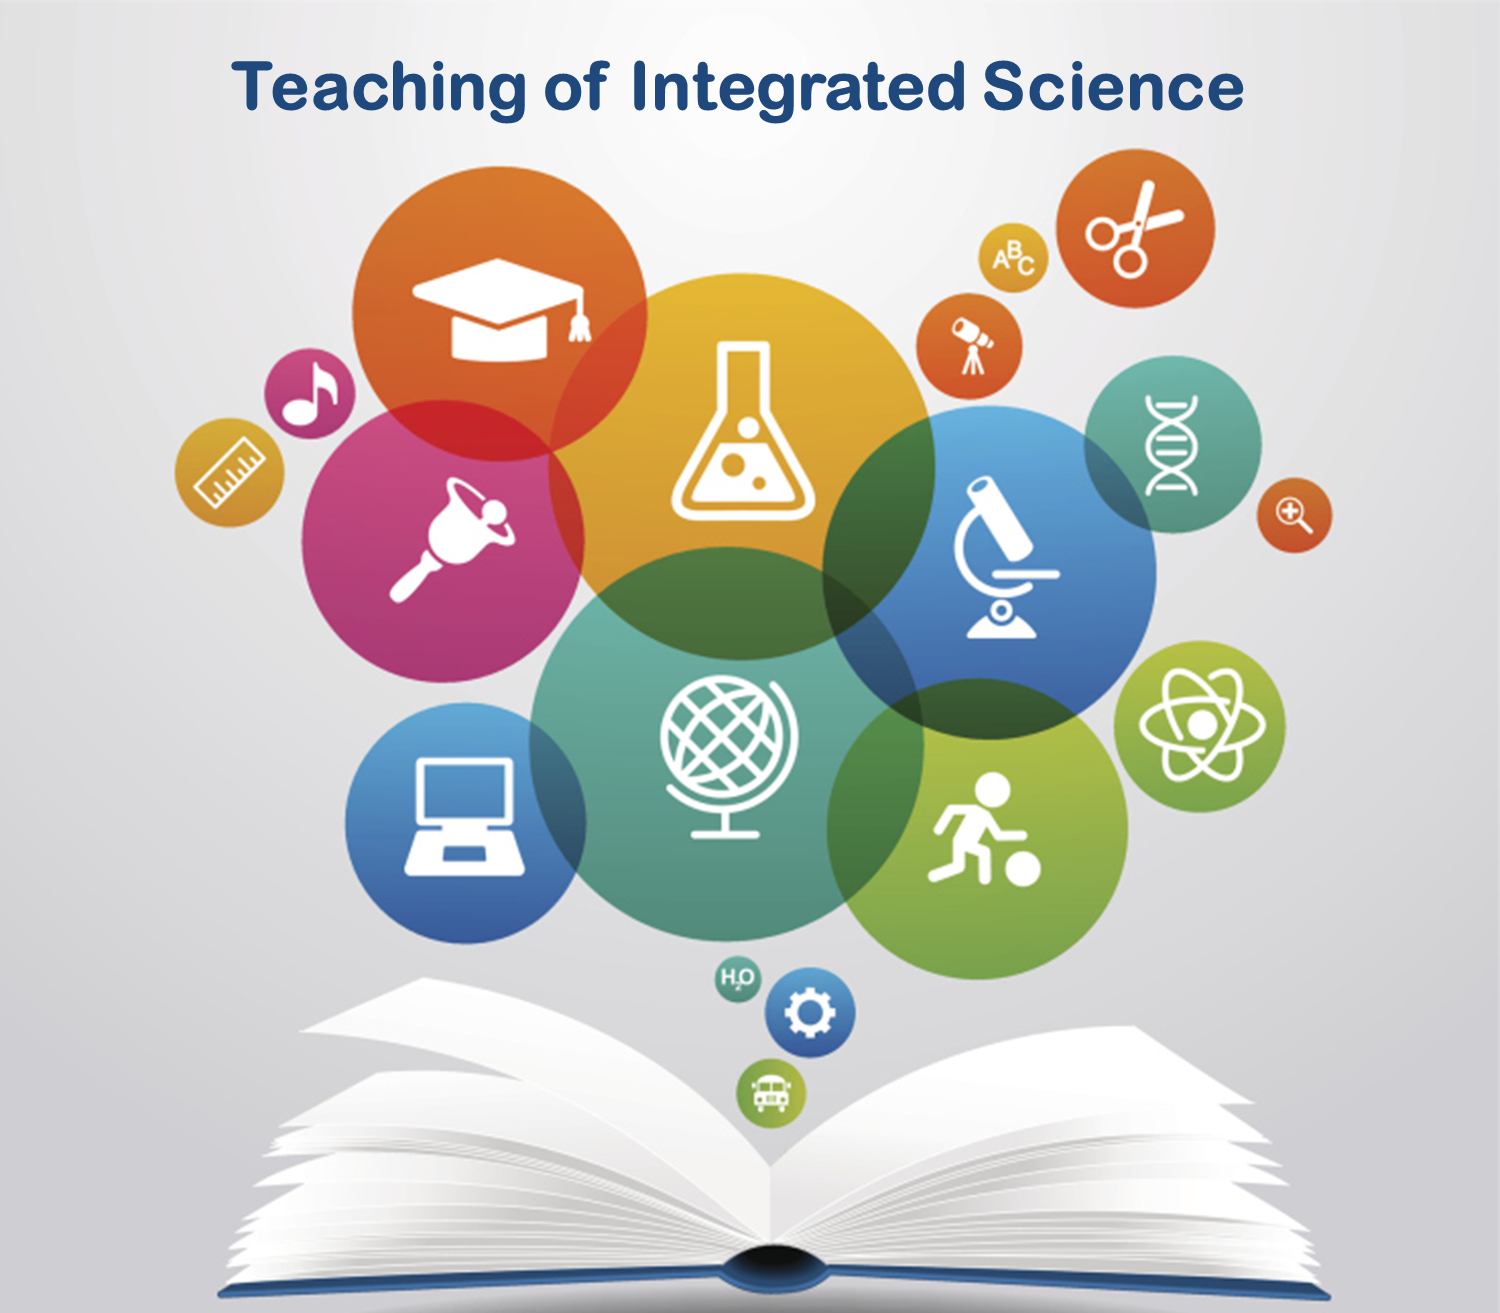 Teaching of Integrated Science